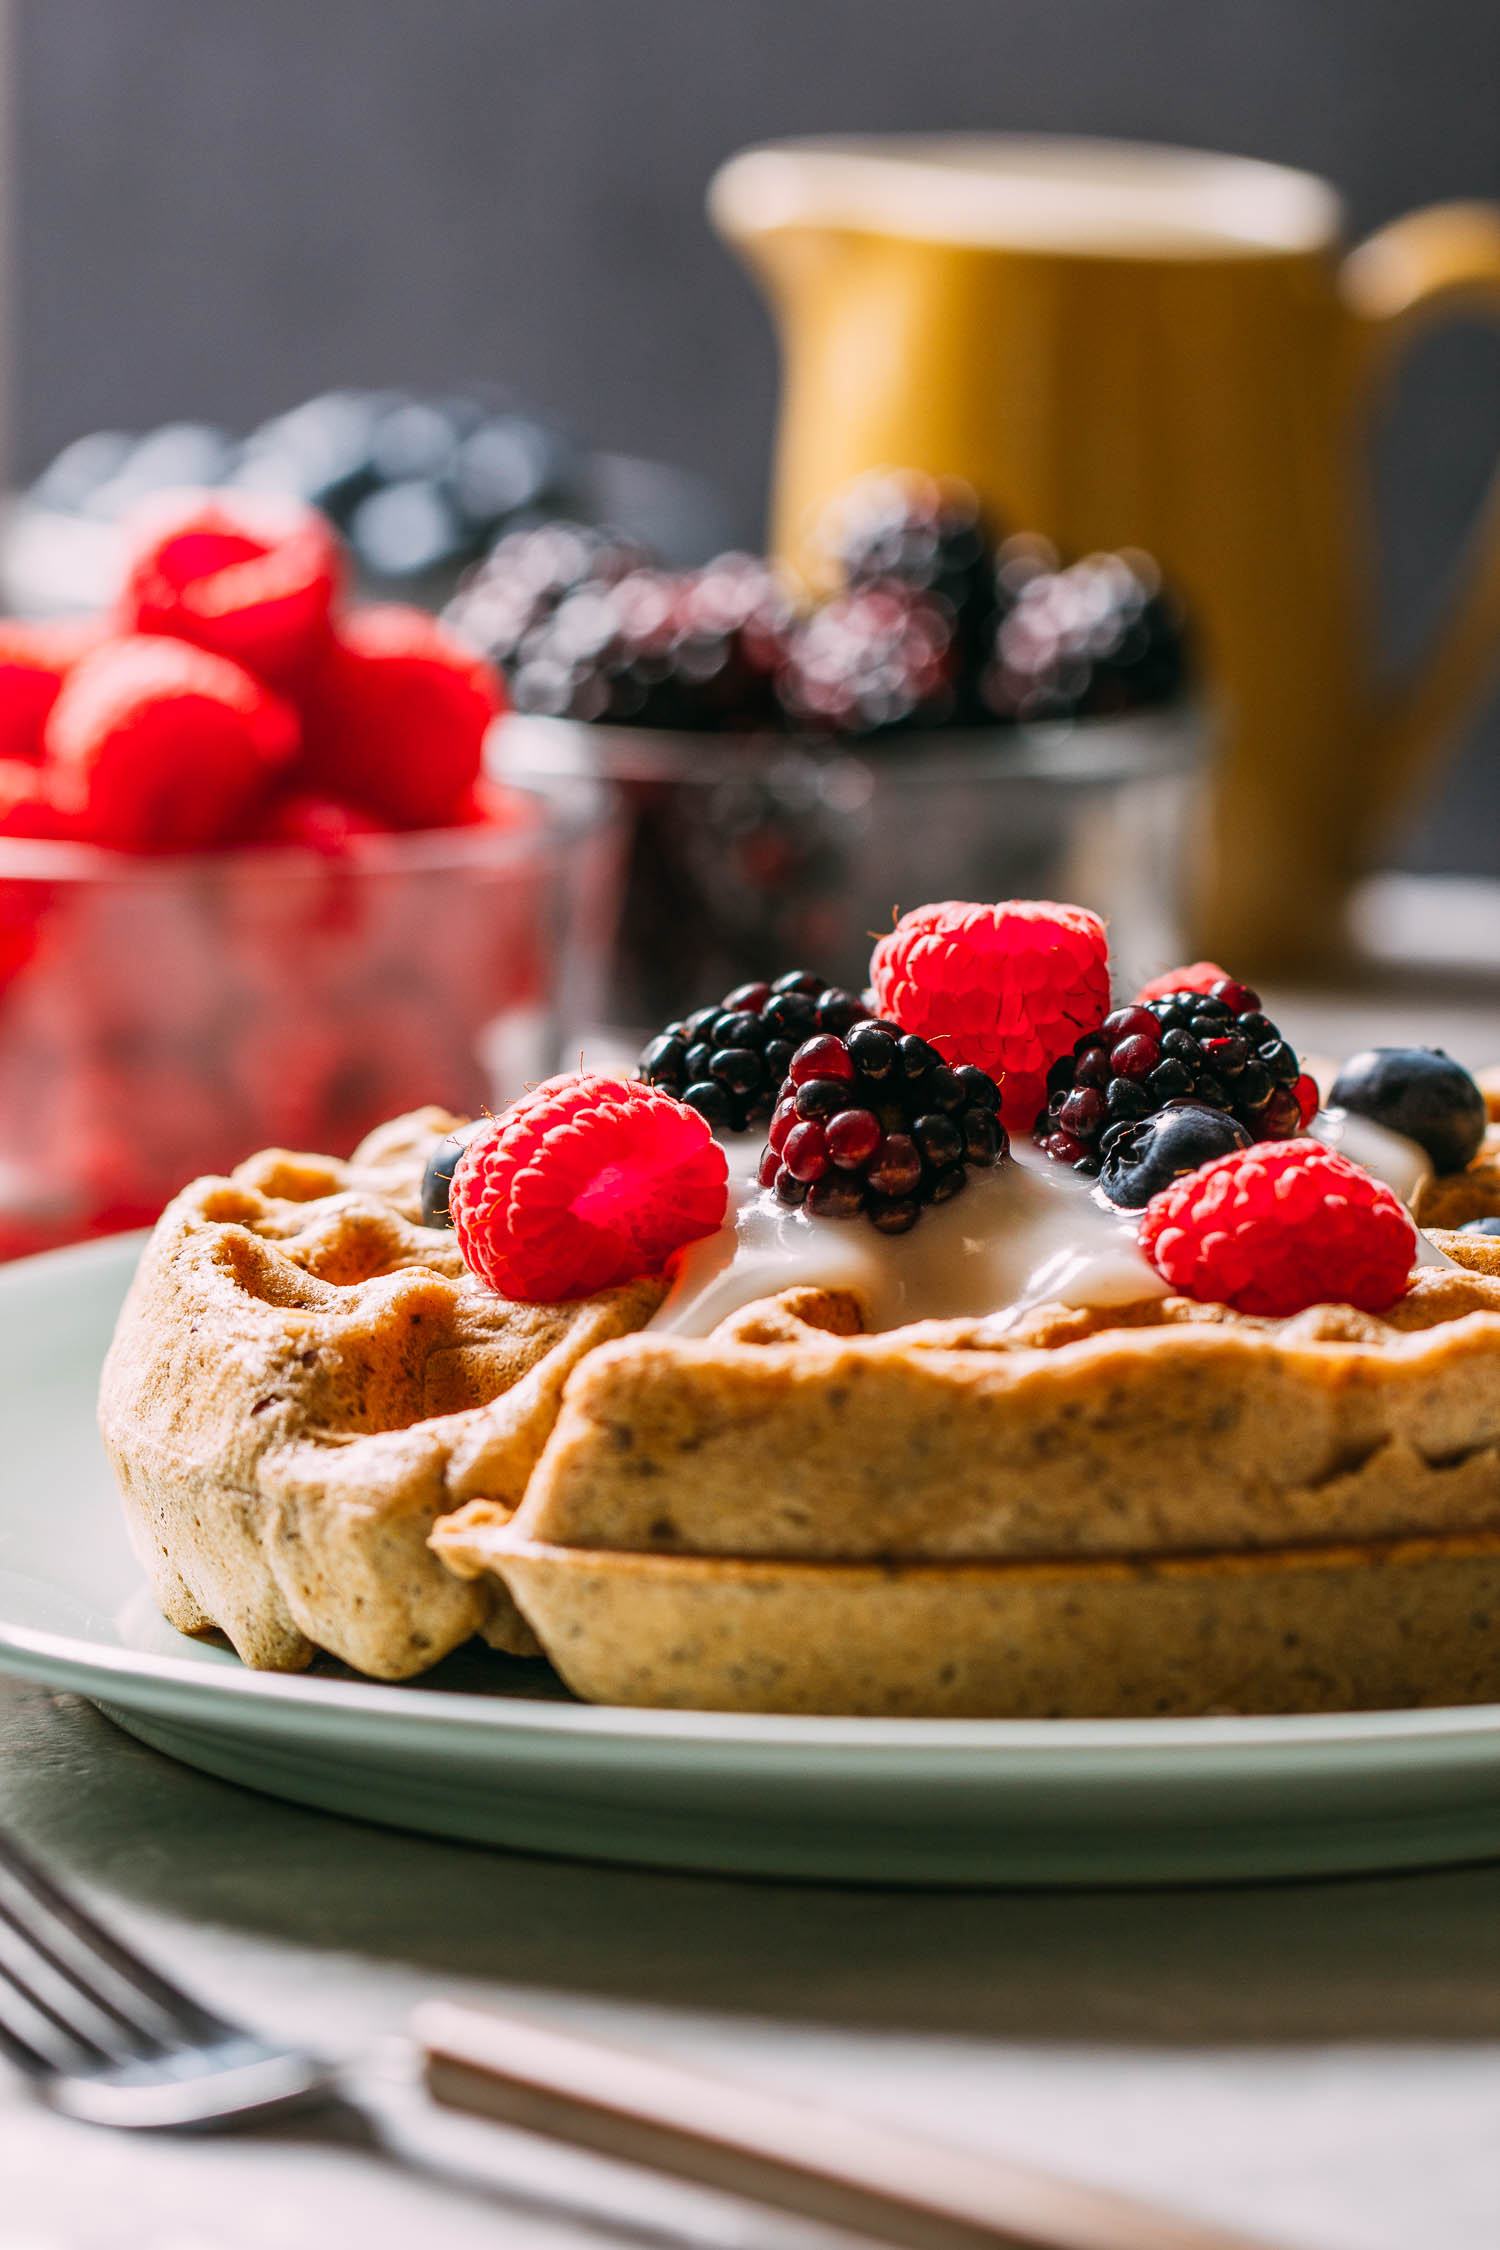 Best Ever Vegan & Gluten-Free Waffles #vegan #gluten-free #refined oil-free #plant-based #refined sugar-free #vegetarian #waffles #breakfast #healthy #nut-free #recipe #recipes #holidays #berries #tahini #cardamom #cinnamon #nutmeg #cashew milk #coconut milk #maple syrup #kid-friendly